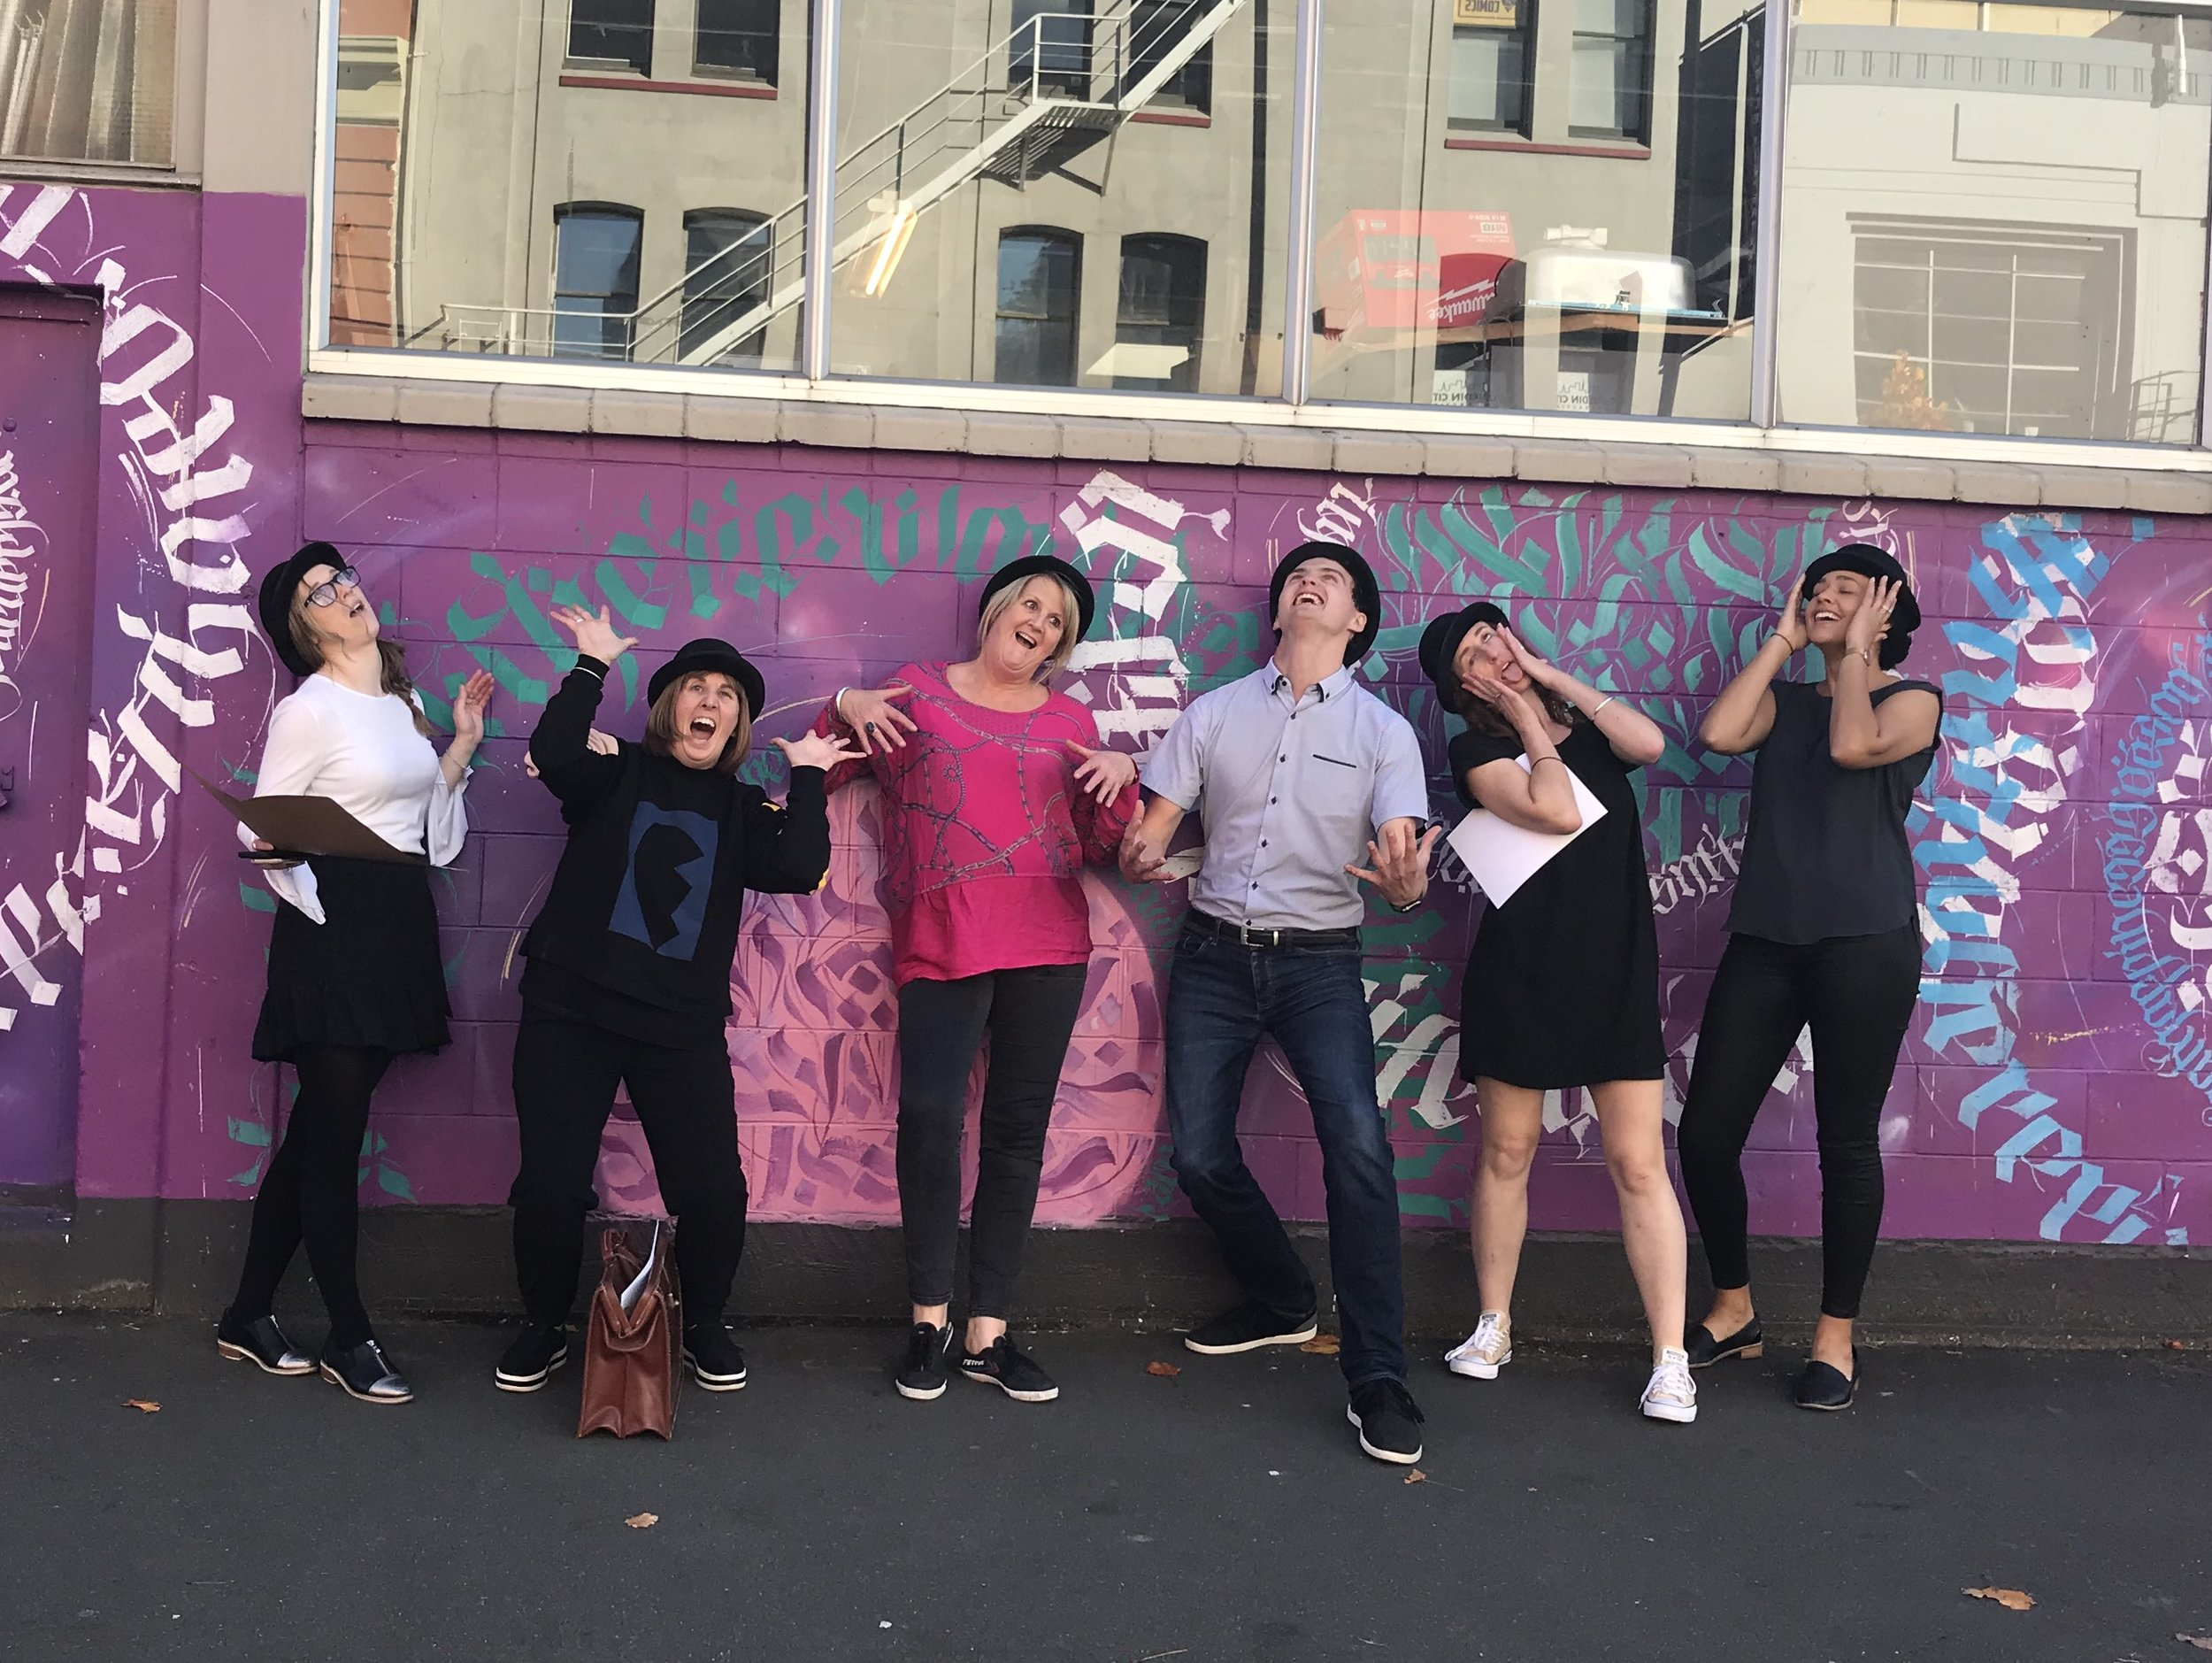 """""""The Staff were buzzing after the event, all had a great time. WPSH provided lots of creativity, fun & laughter."""" - — Darryn Wilkie, Business Manager, Select Recruitment"""